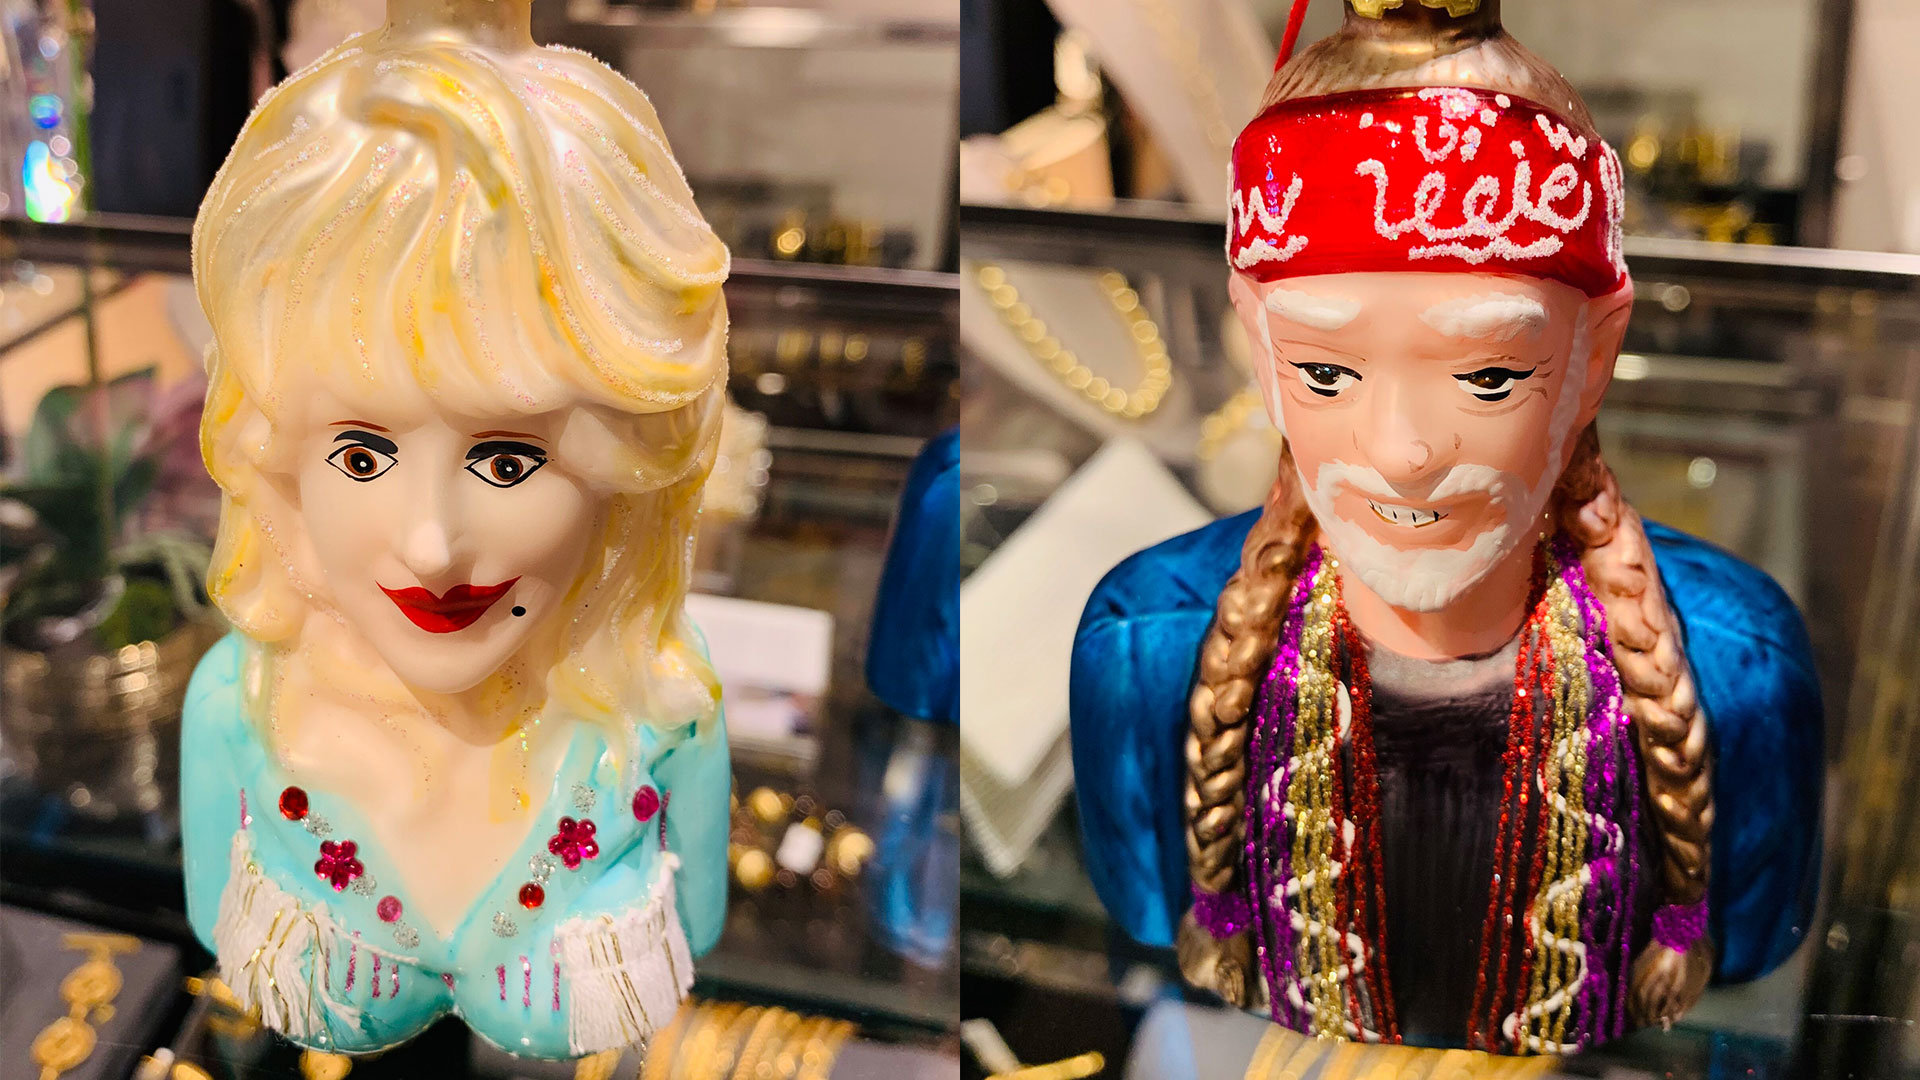 Dolly Parton and Willie Nelson Christmas Ornaments